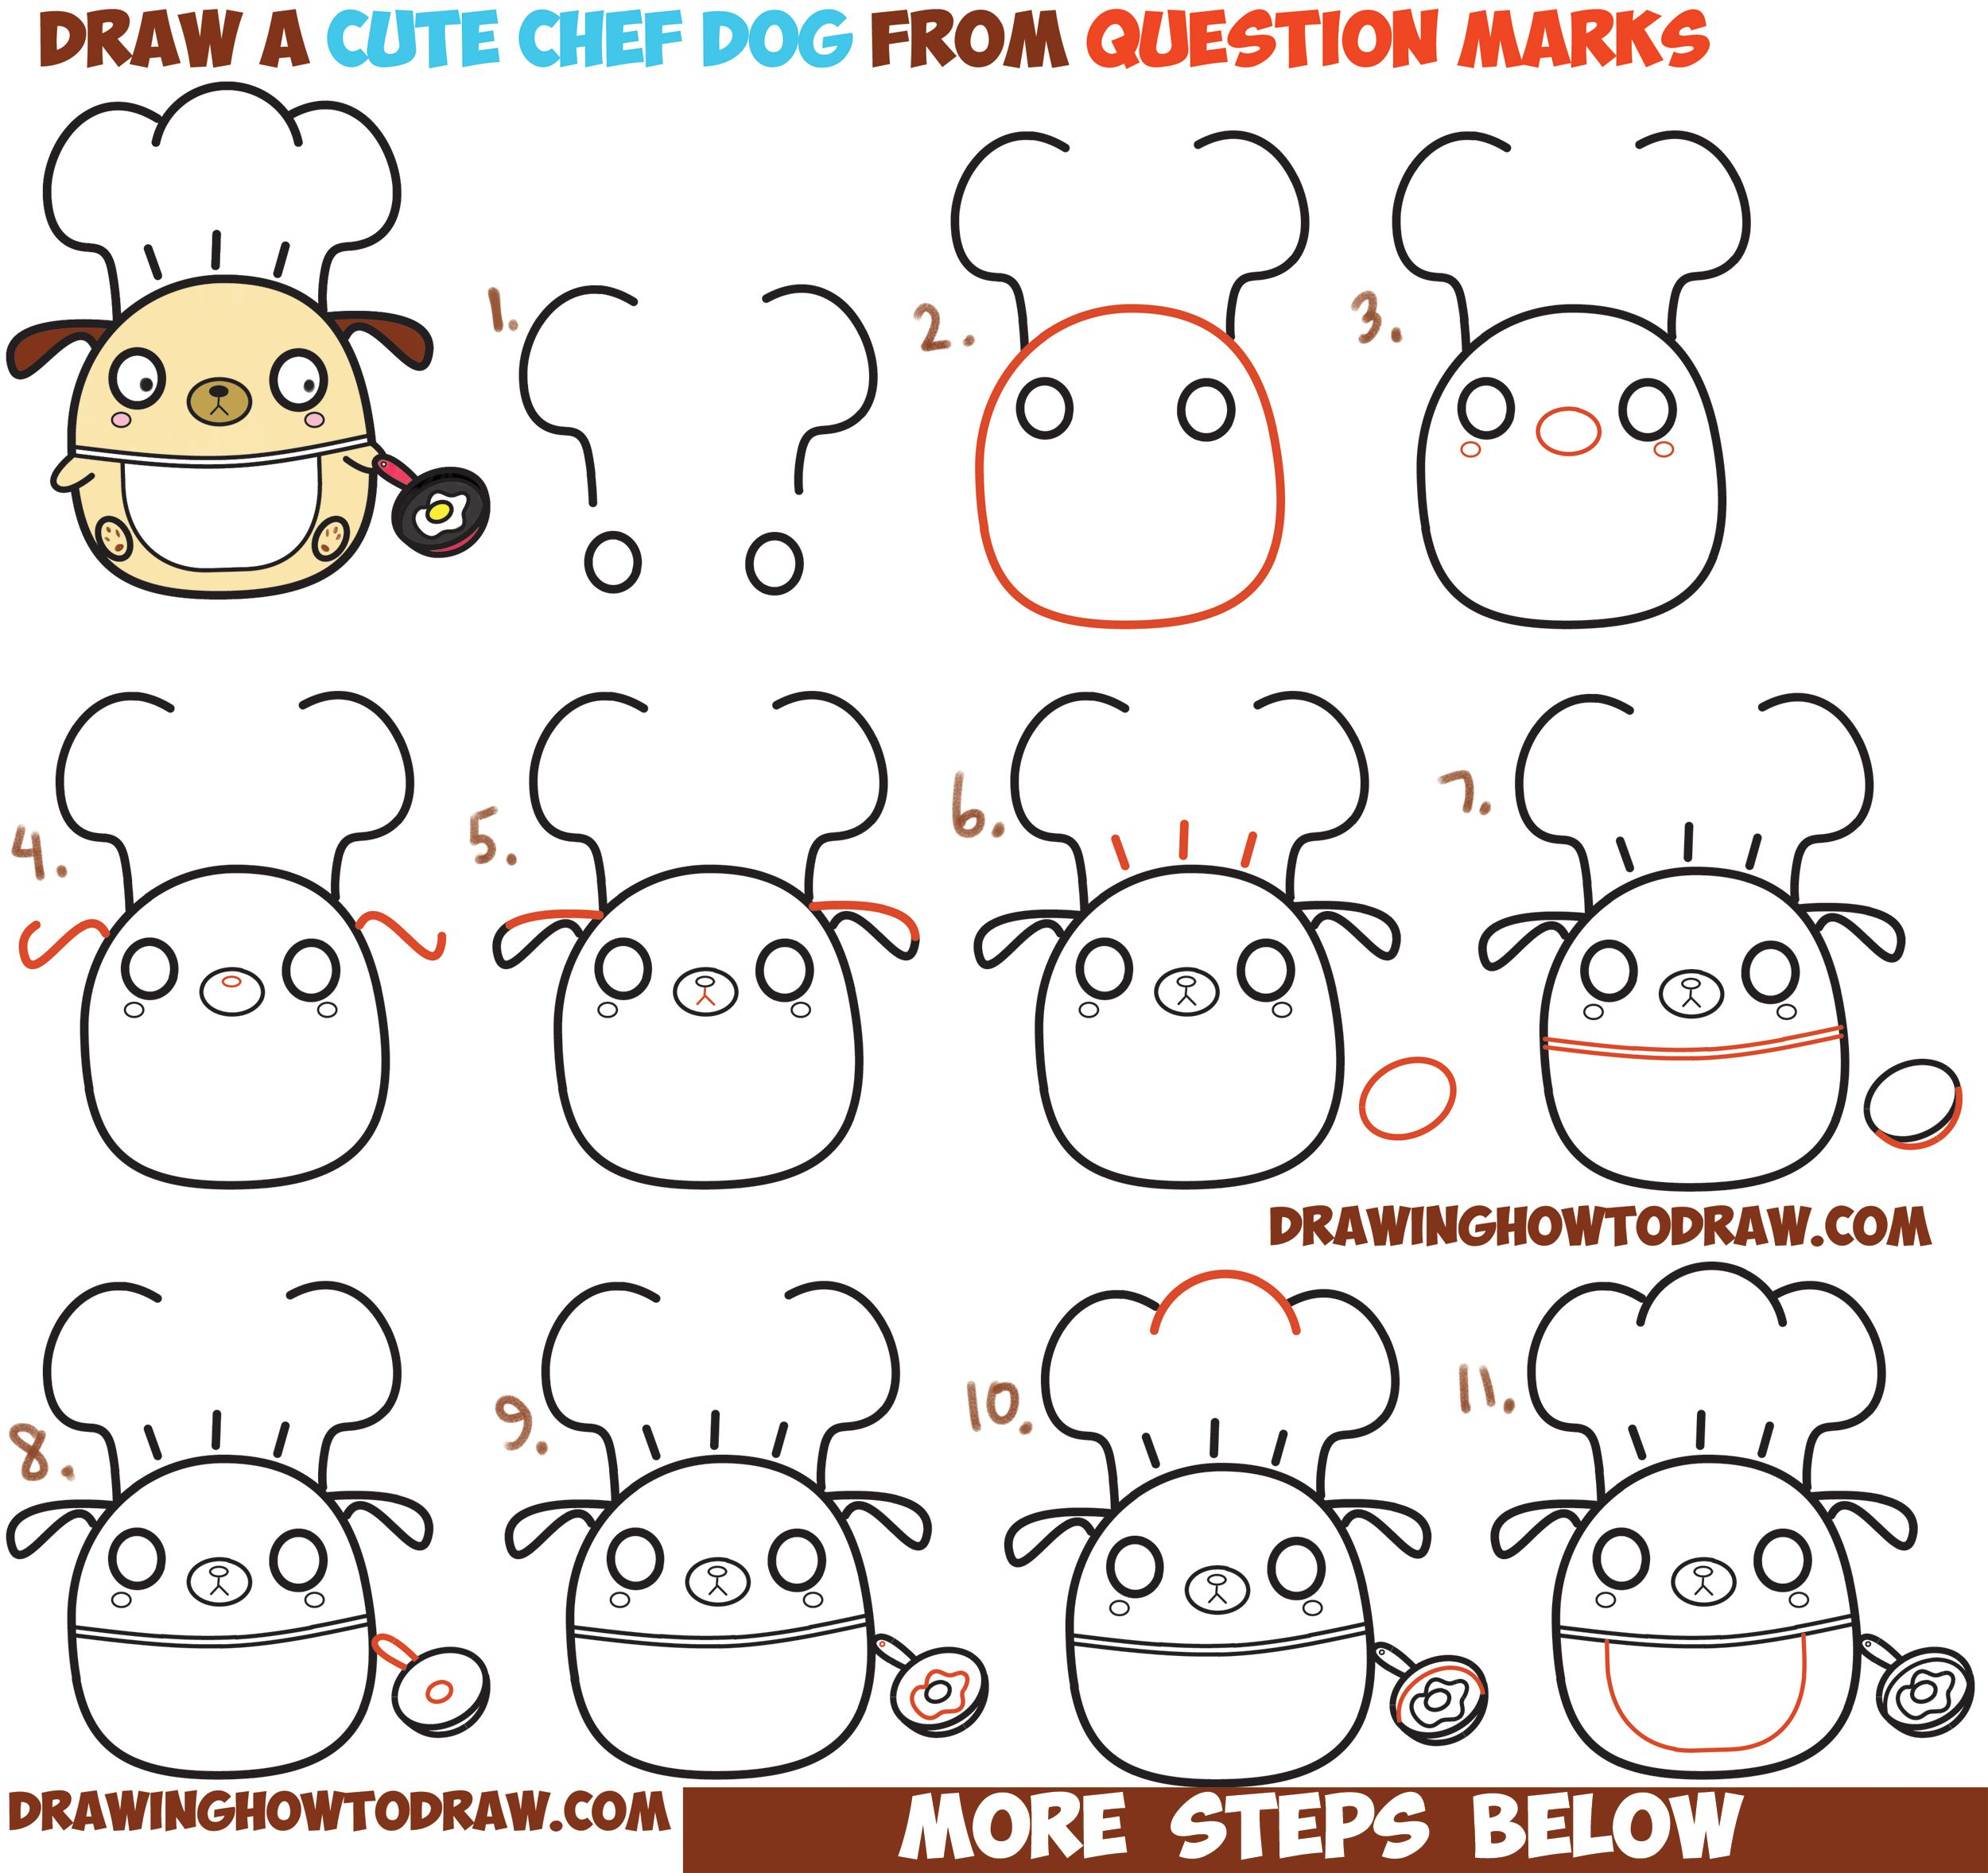 How To Draw Cute Kawaii Chibi Dog Chef Cooking From Question Mark Shapes With Easy Step By Step Drawing Tutorial For Kids How To Draw Step By Step Drawing Tut